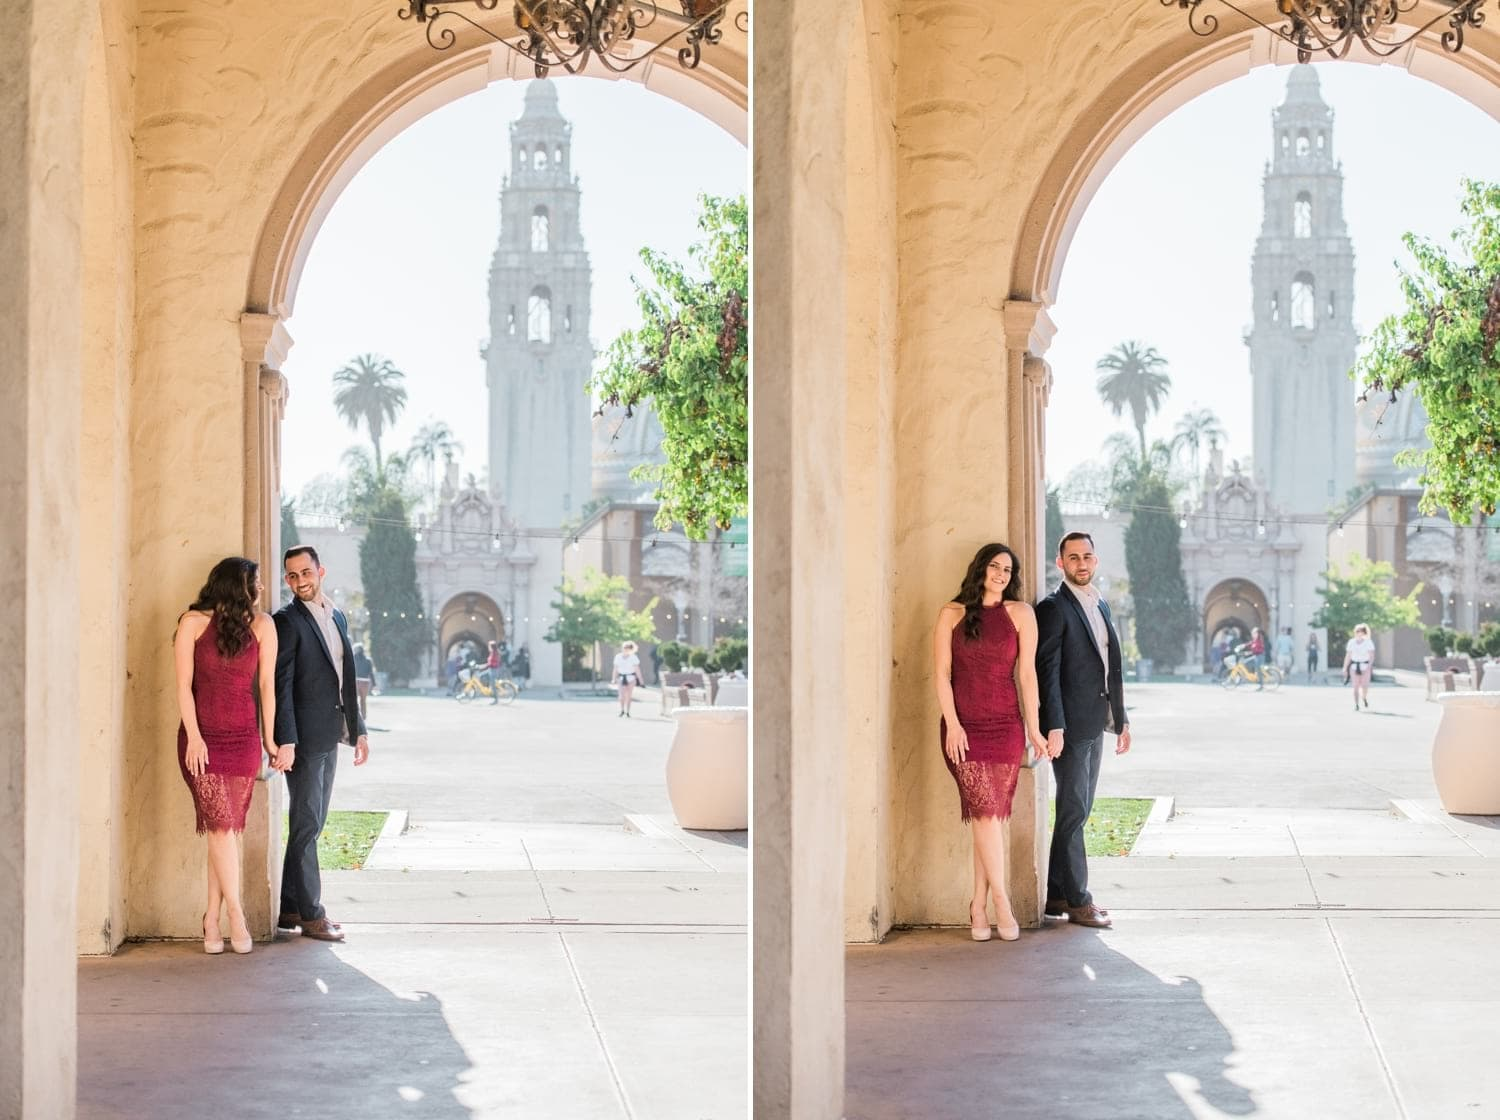 Engagement photos in San Diego at Balboa Park.